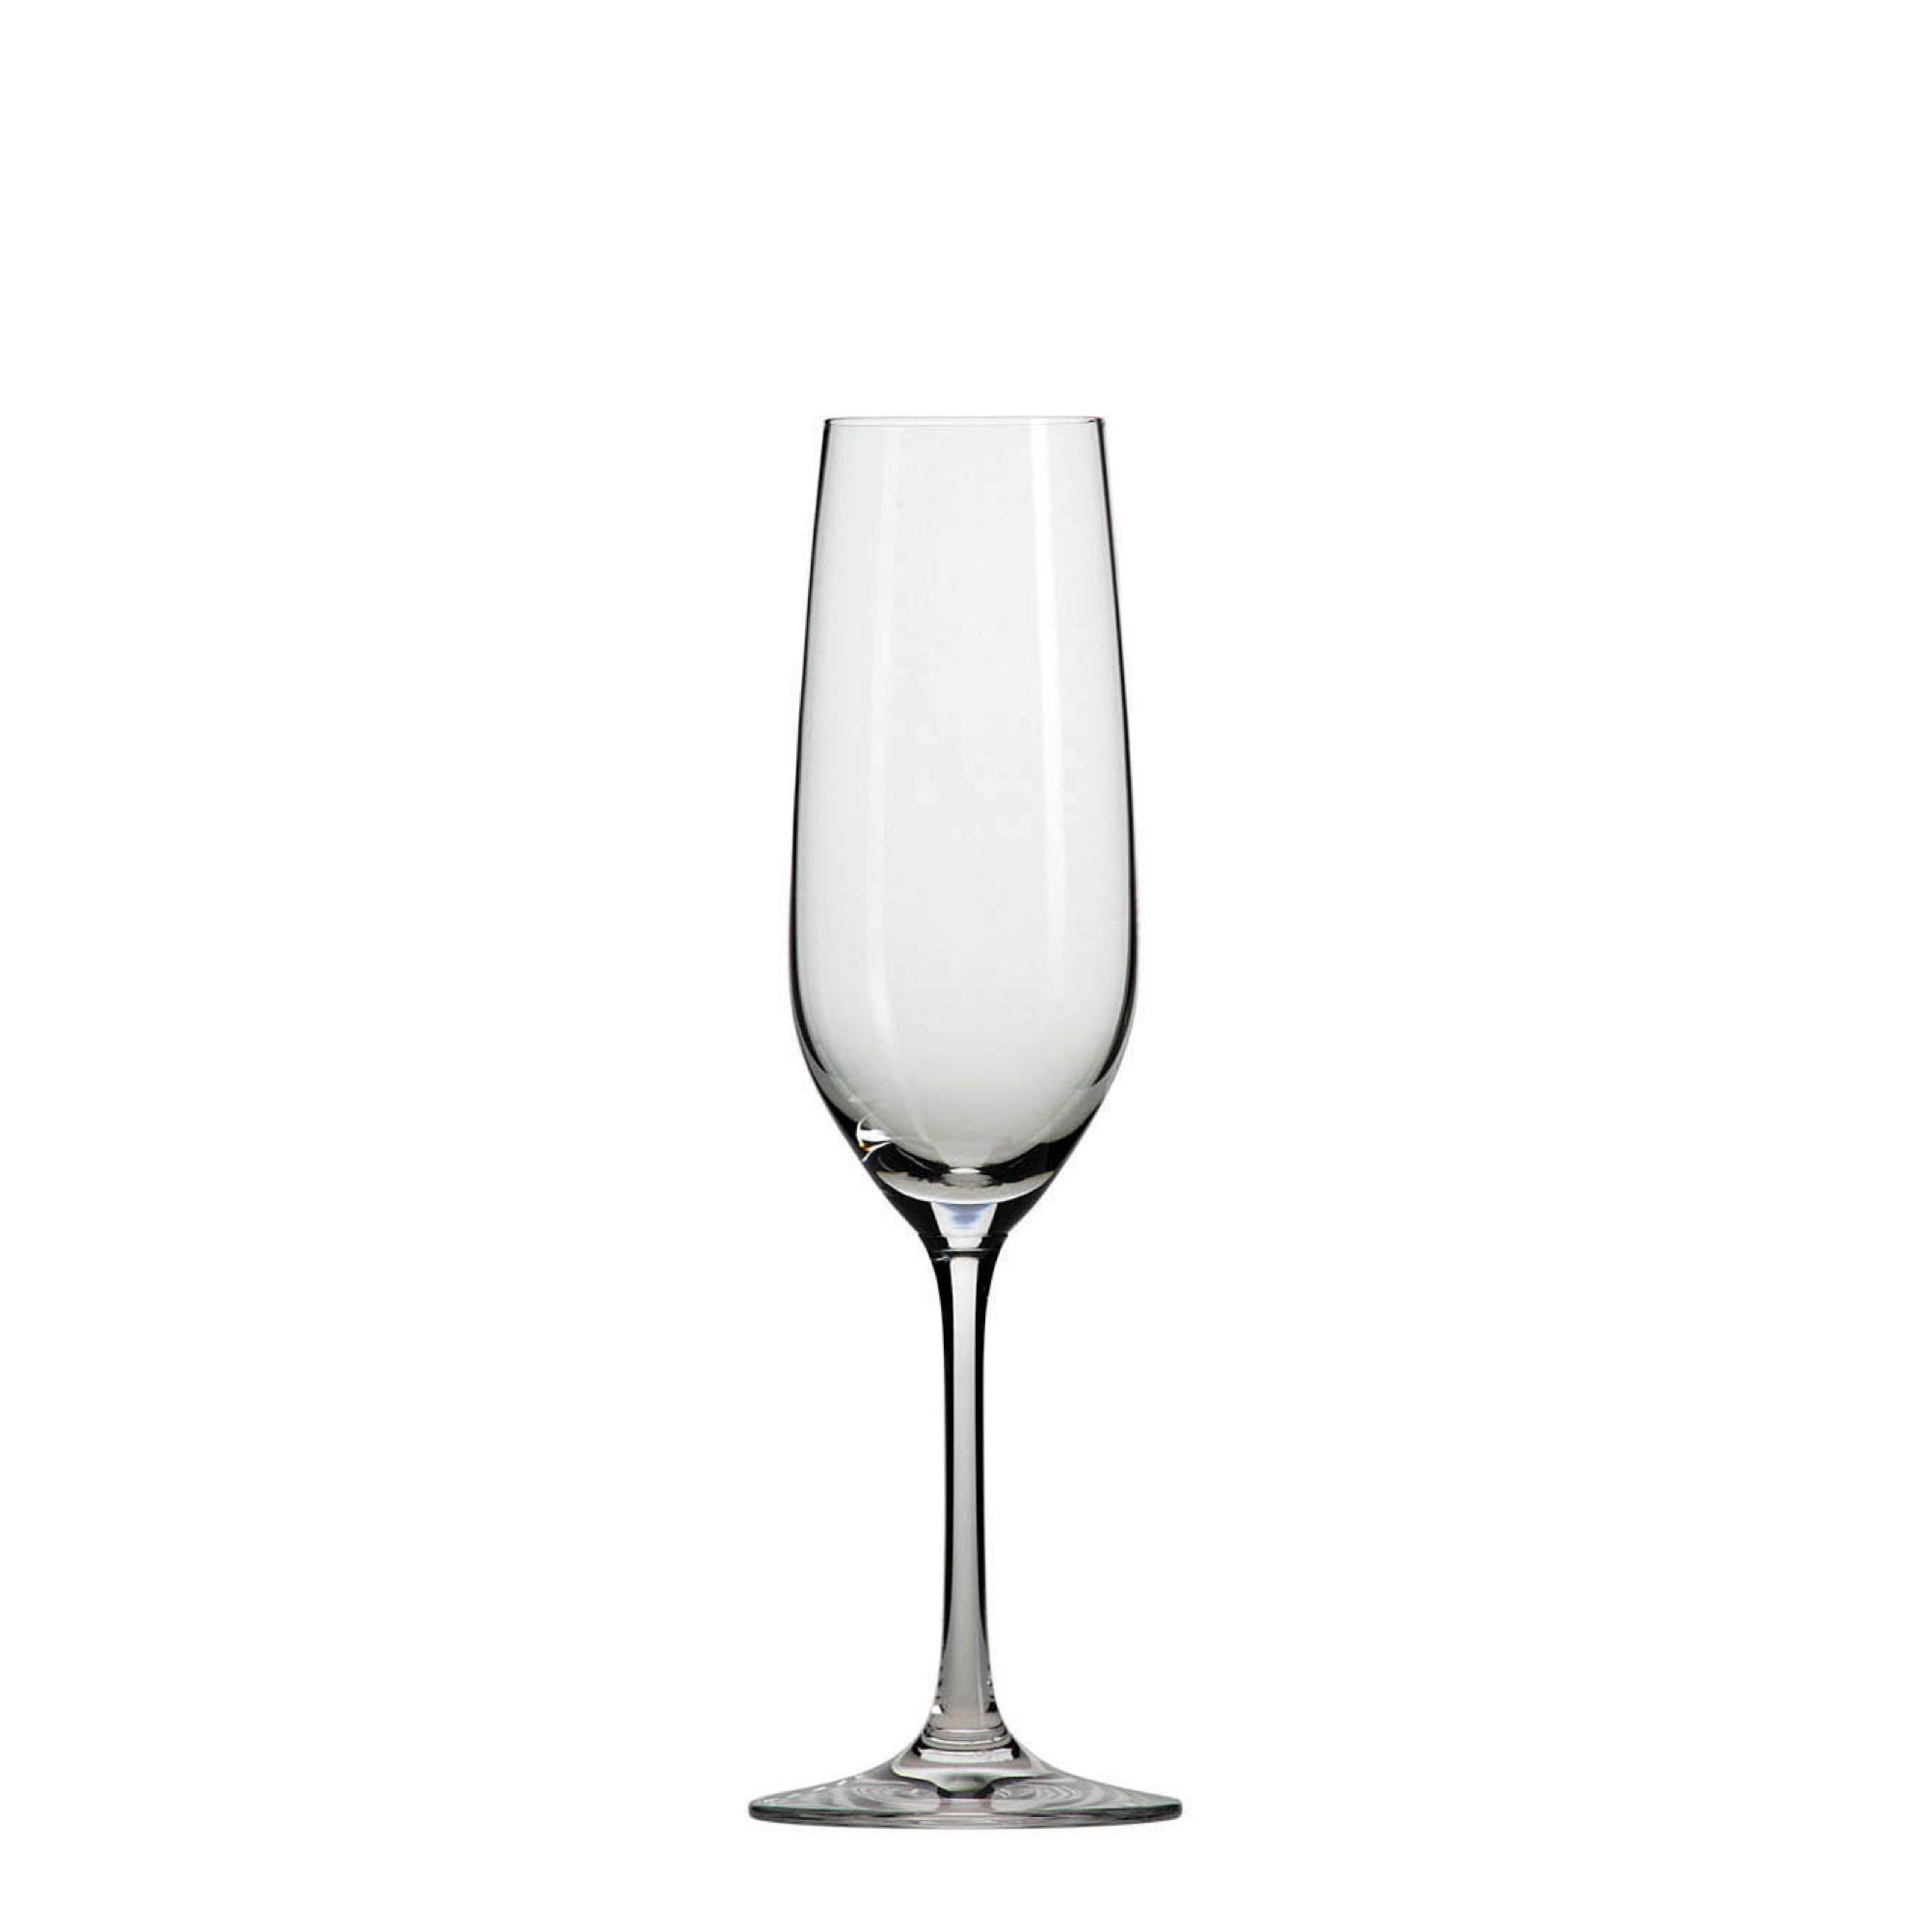 Tritan Glass | Schott Zwiesel Wine Glasses | Schott Zwiesel Wine Glasses Reviews